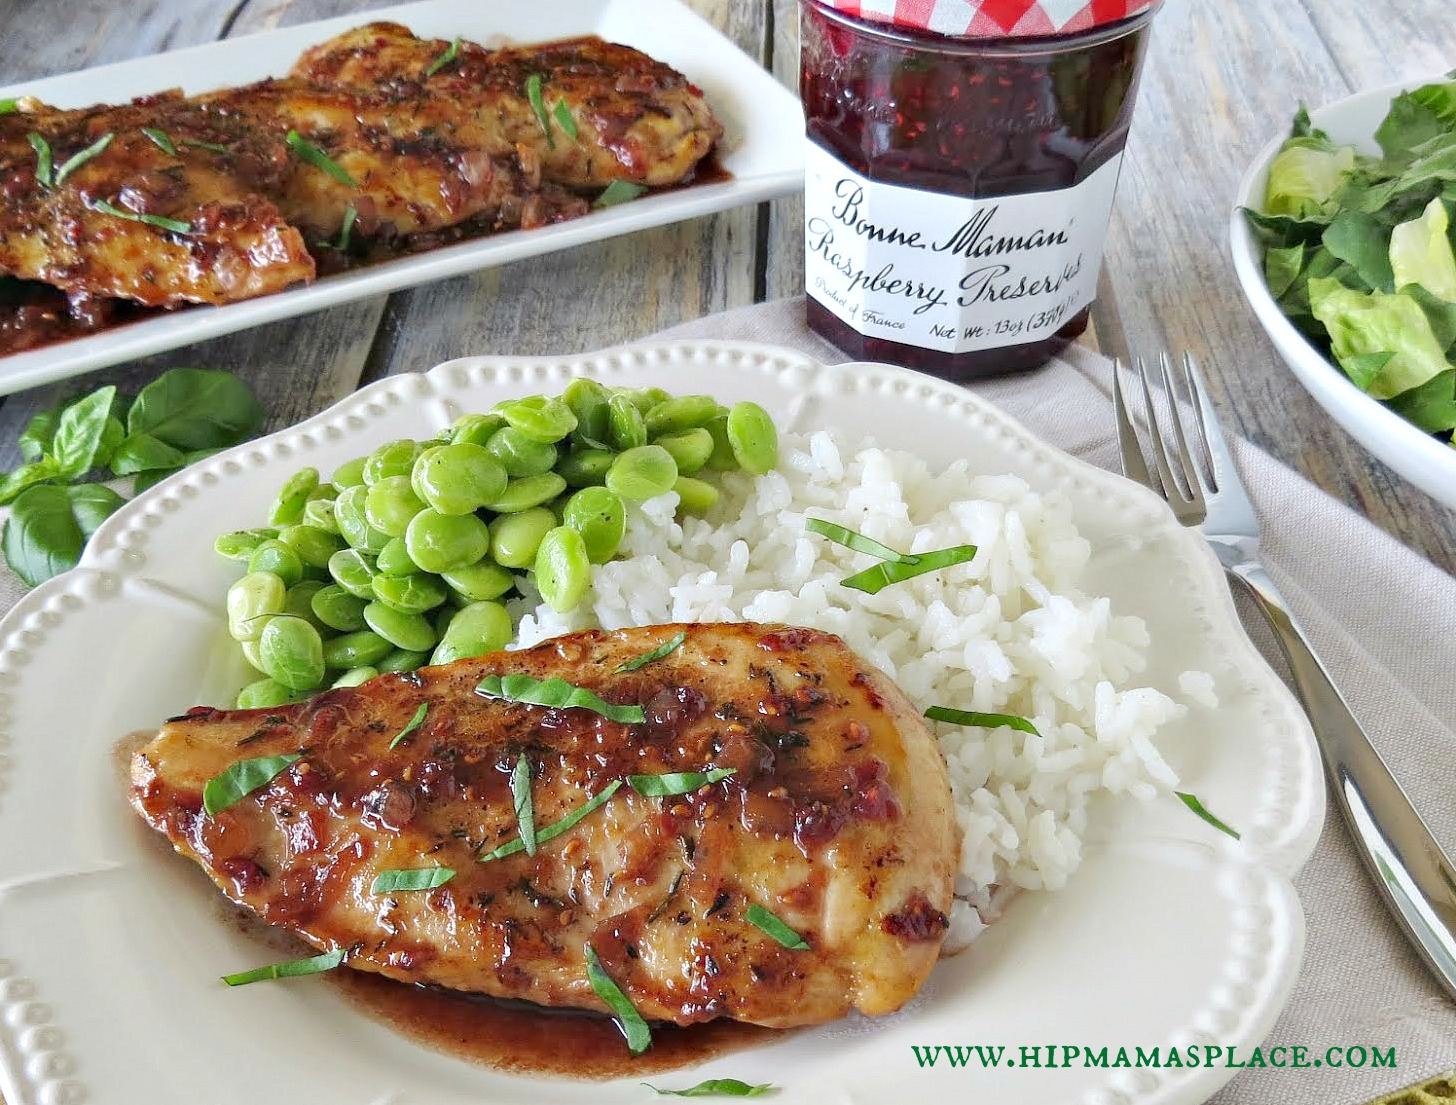 Raspberry Balsamic Glazed Chicken